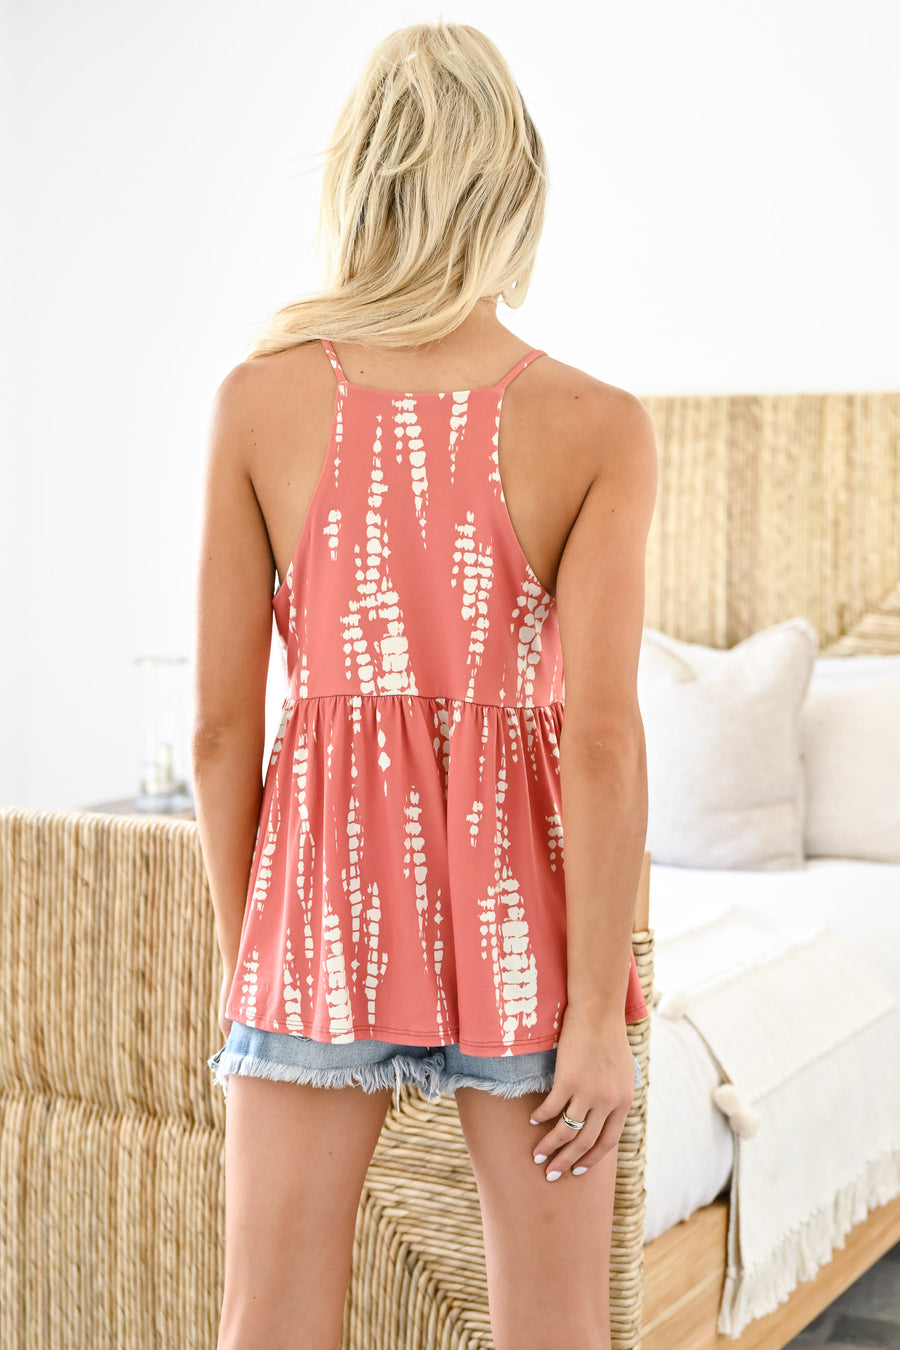 You're a Dream Tank - Creamsicle womens trendy printed baby doll tank closet candy front